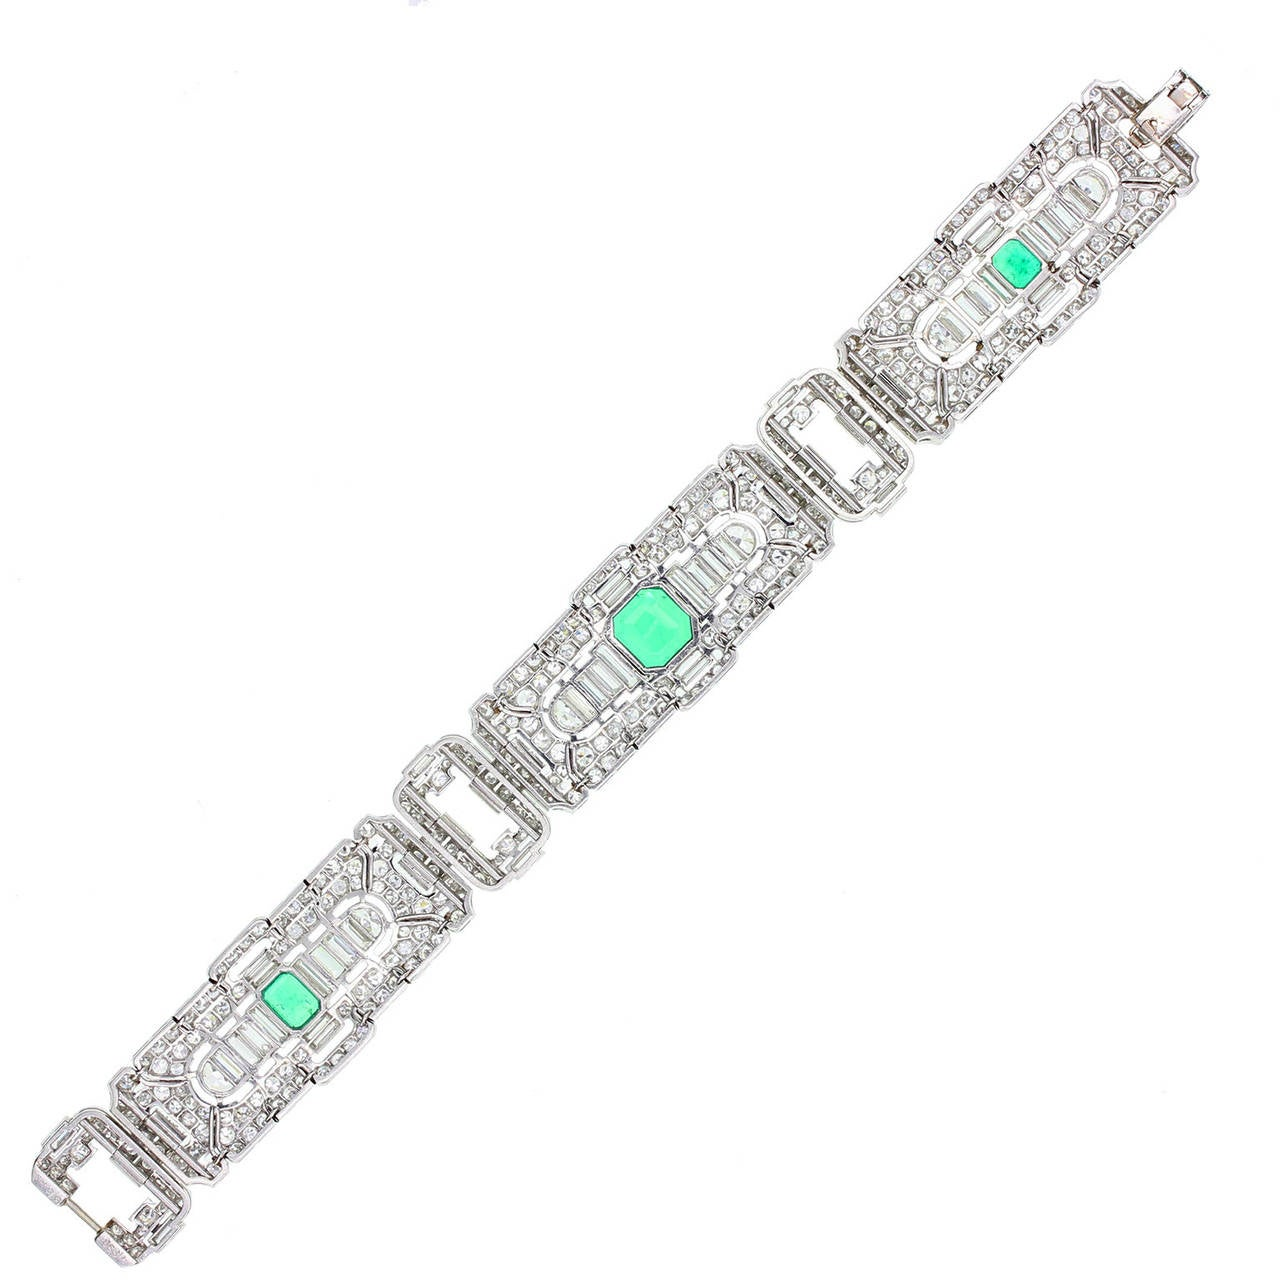 Art Deco Colombian Emerald Diamond Platinum Panel Bracelet In Excellent Condition For Sale In Newcastle Upon Tyne, GB